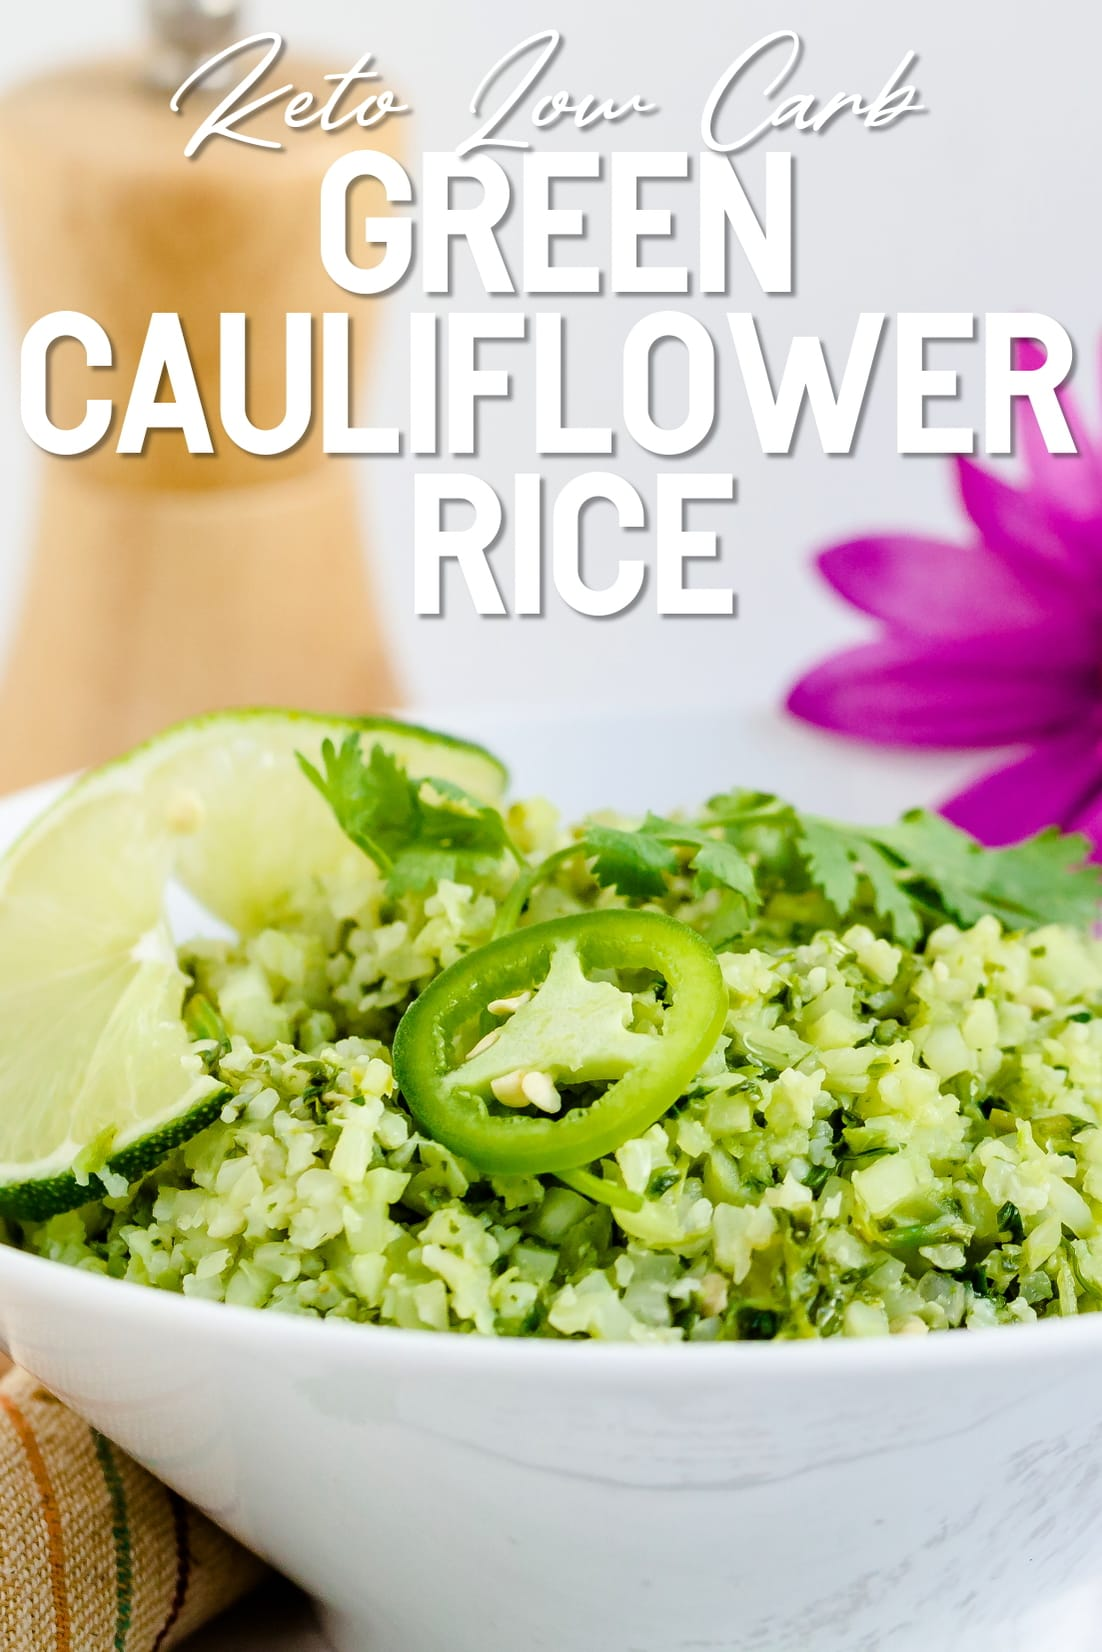 Green Cauliflower Rice Close Up